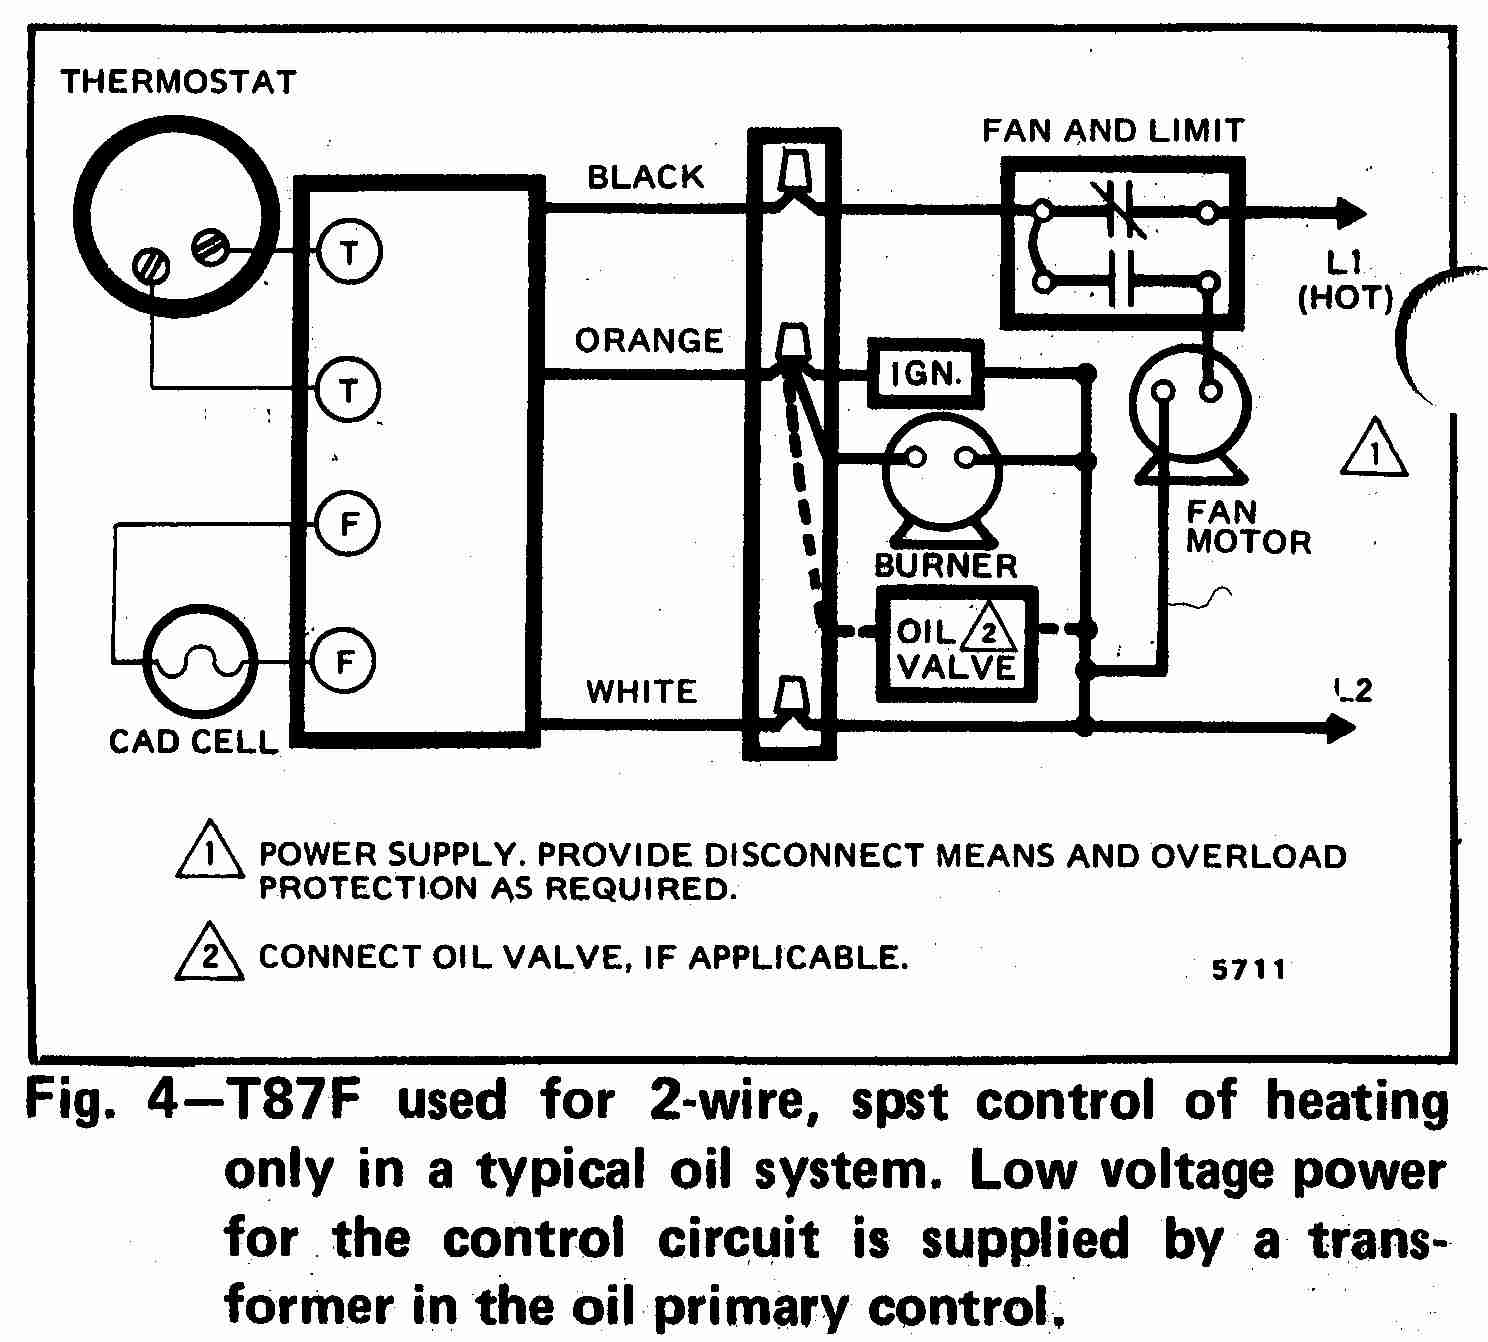 room thermostat wiring diagrams for hvac systems rh inspectapedia com thermostat wiring diagram heat only thermostat wiring diagram heat only